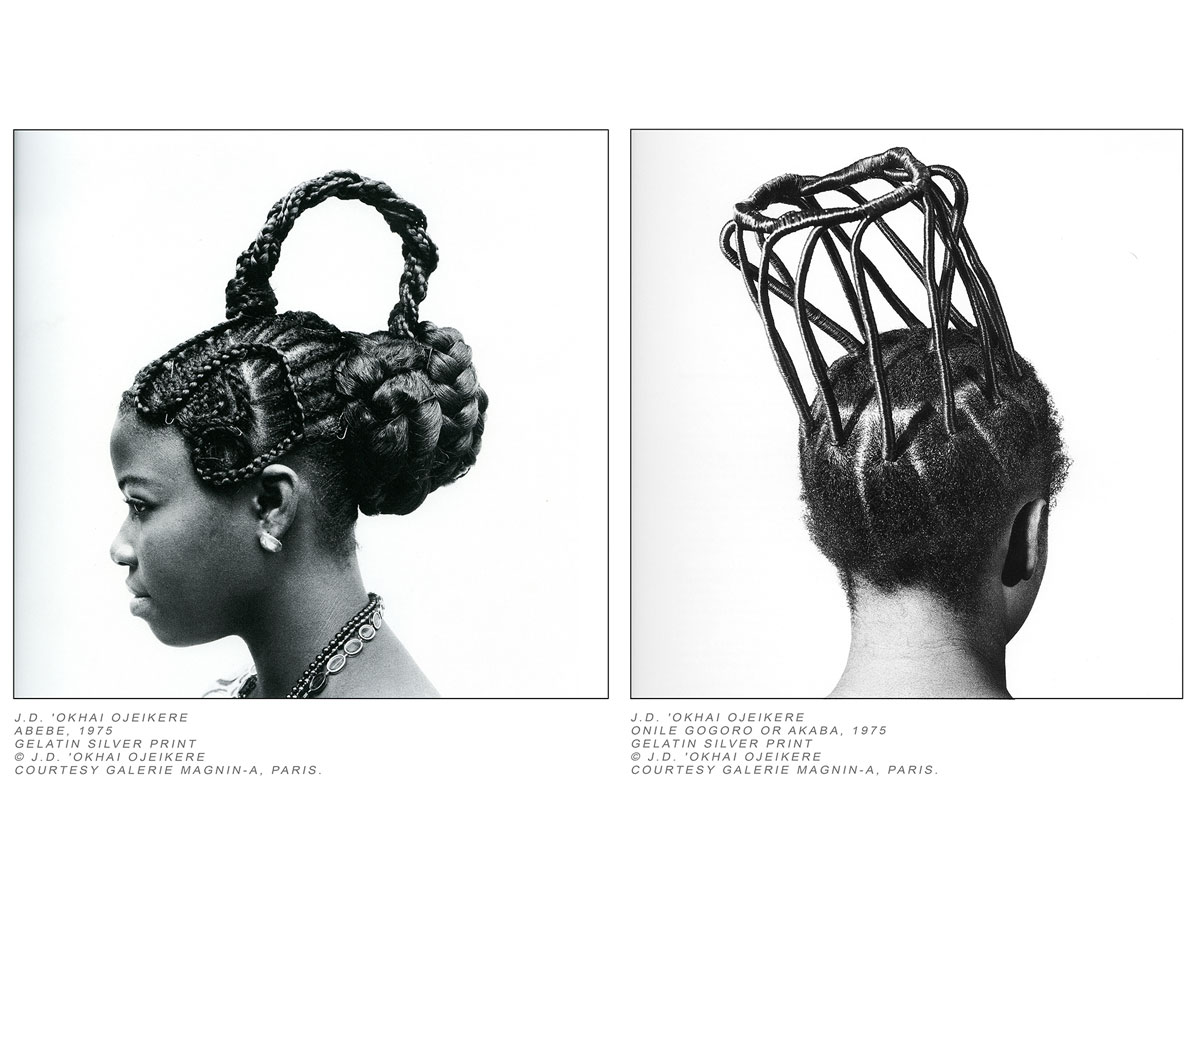 J.D 'Okhai Ojeikere: Hairstyles and Headresses - Southbank Centre's Hayward Gallery and Of One Mind present the first Australian tour of work by the acclaimed African photographer J.D 'Okhai Ojeikere for WOW at Festival 2018. J.D 'Okhai Ojeikere's Hairstyles series is a unique typological survey, which provides an enduringly beautiful and powerful insight into Nigerian culture.The exhibition will feature over 40 images printed from the original negatives.